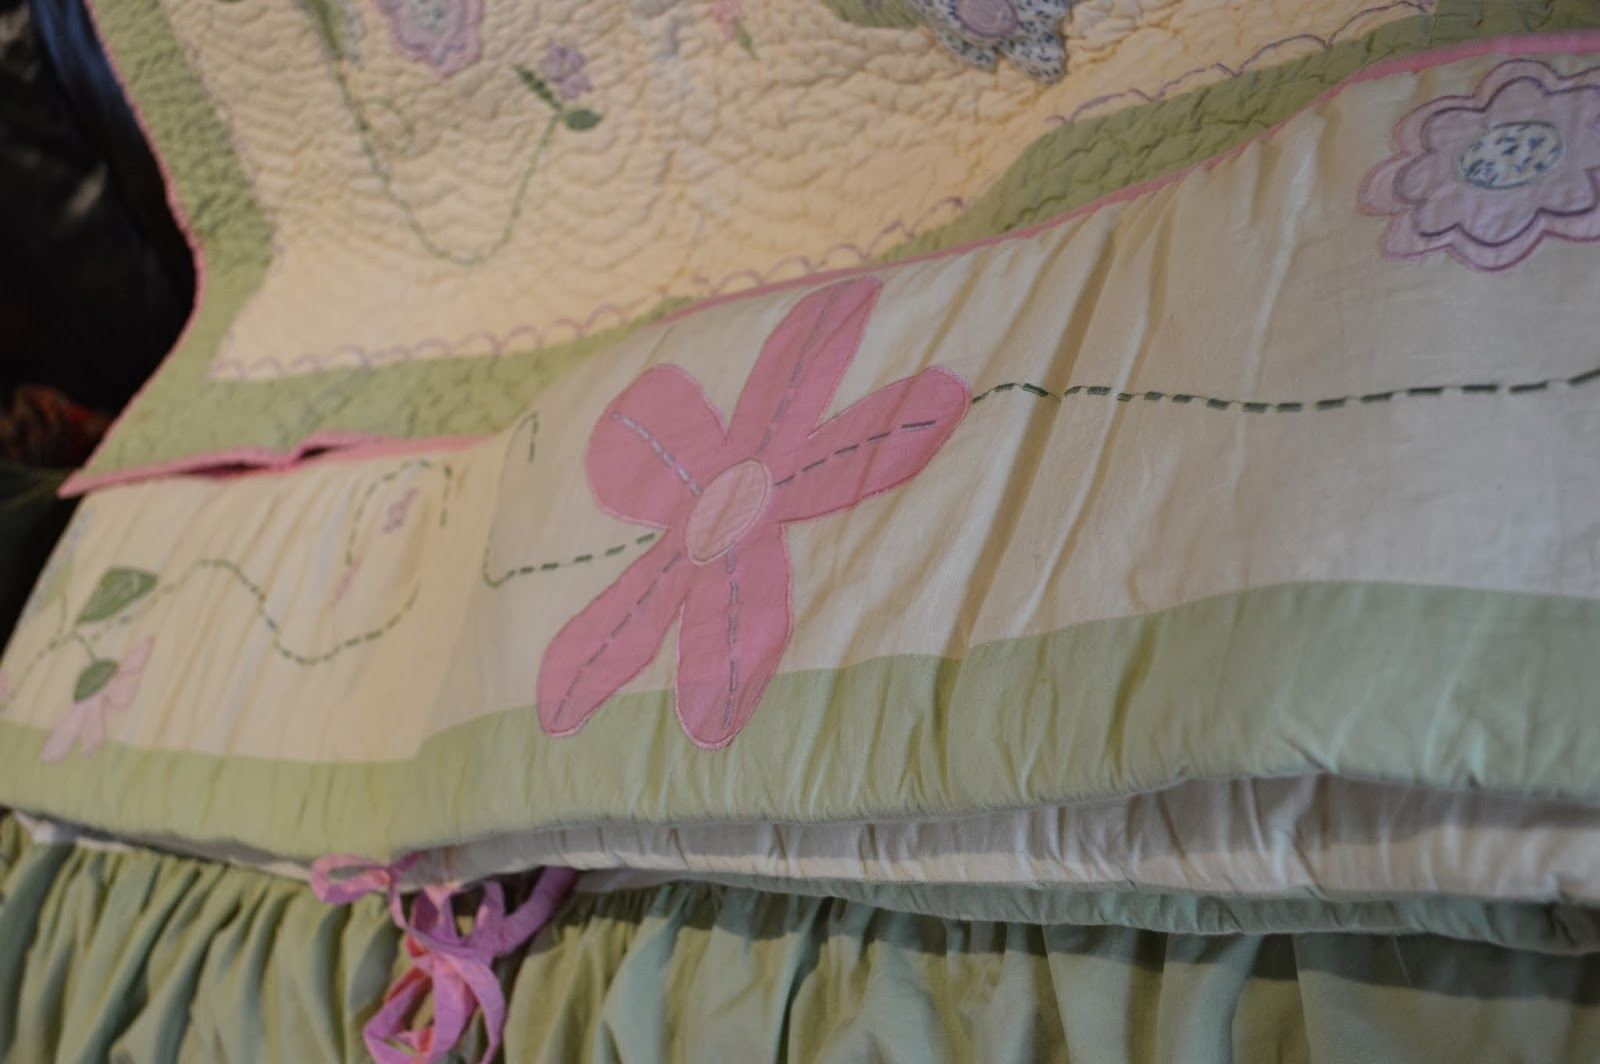 Laura Ashley Crib Bedding Set Includes Matching Skirt Per And Quilt In Very Good Condition